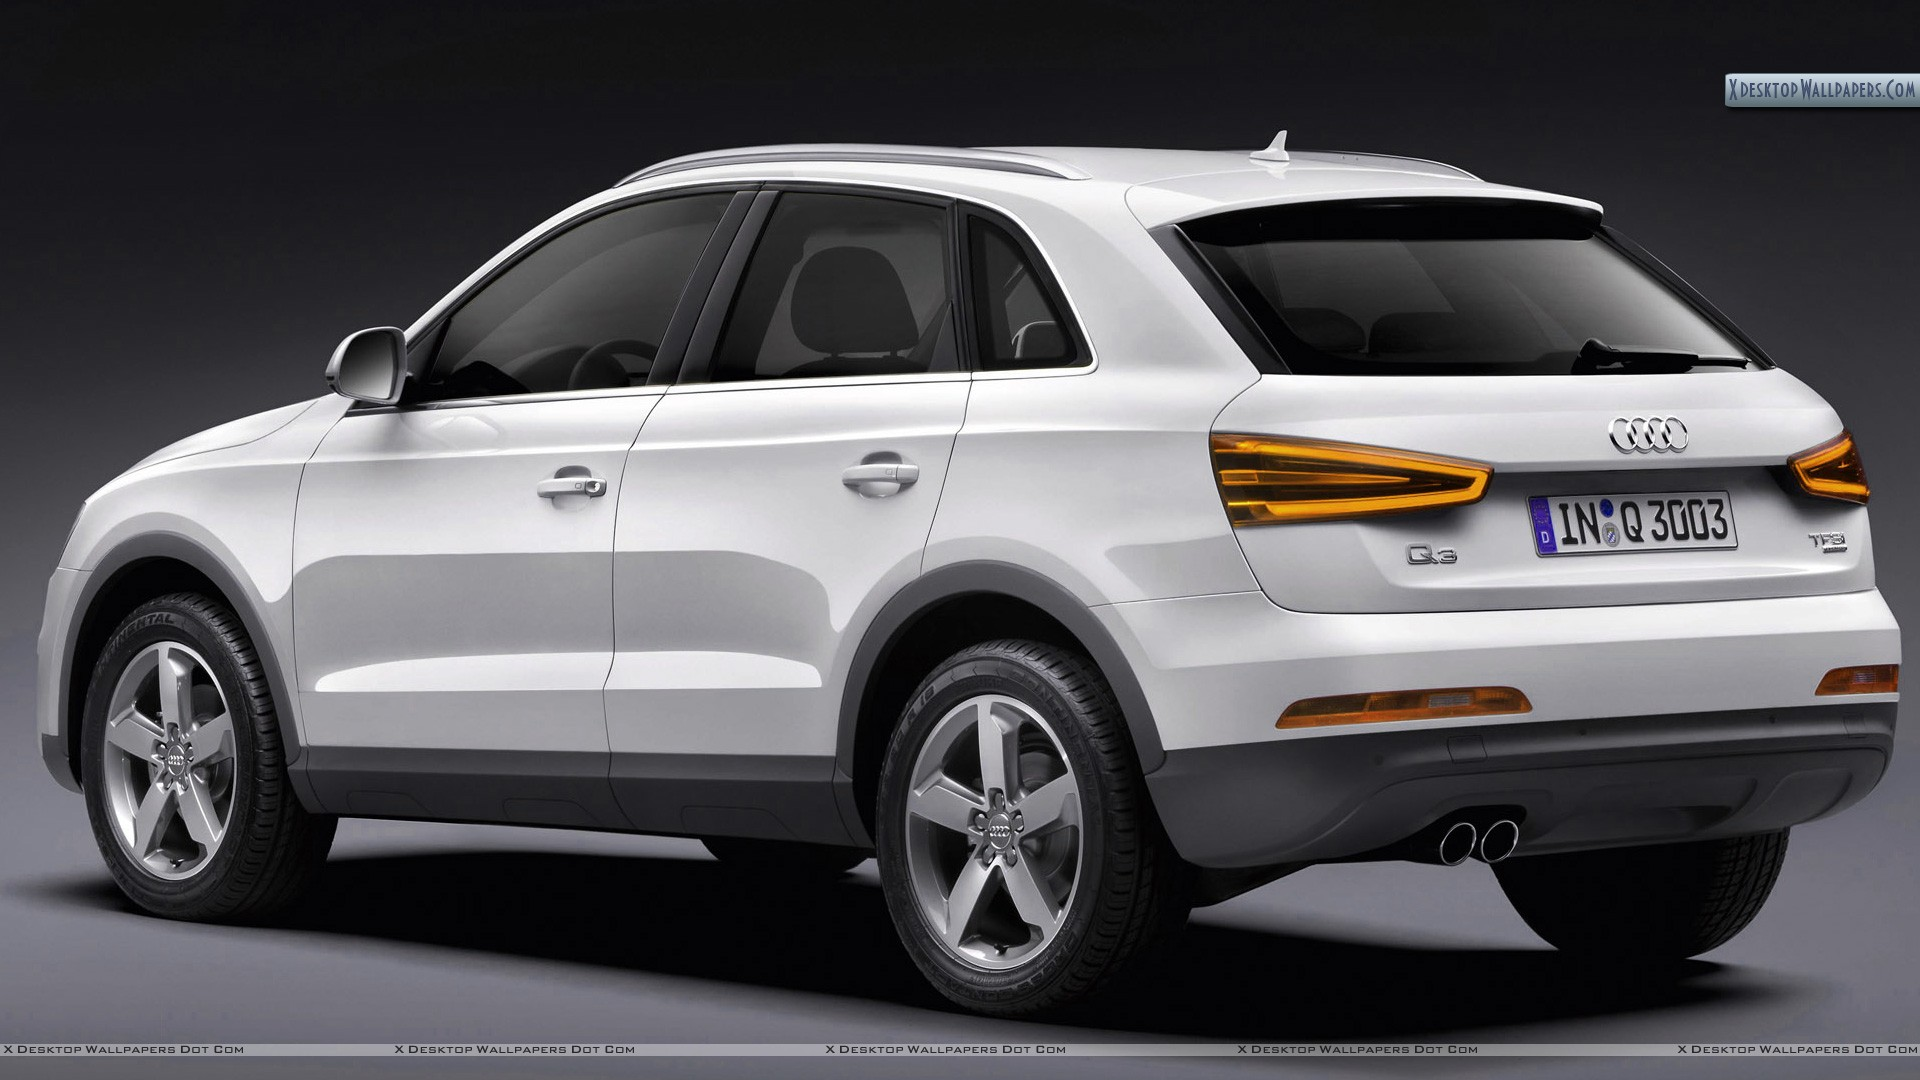 Audi White 2012 Q3 Wallpaper